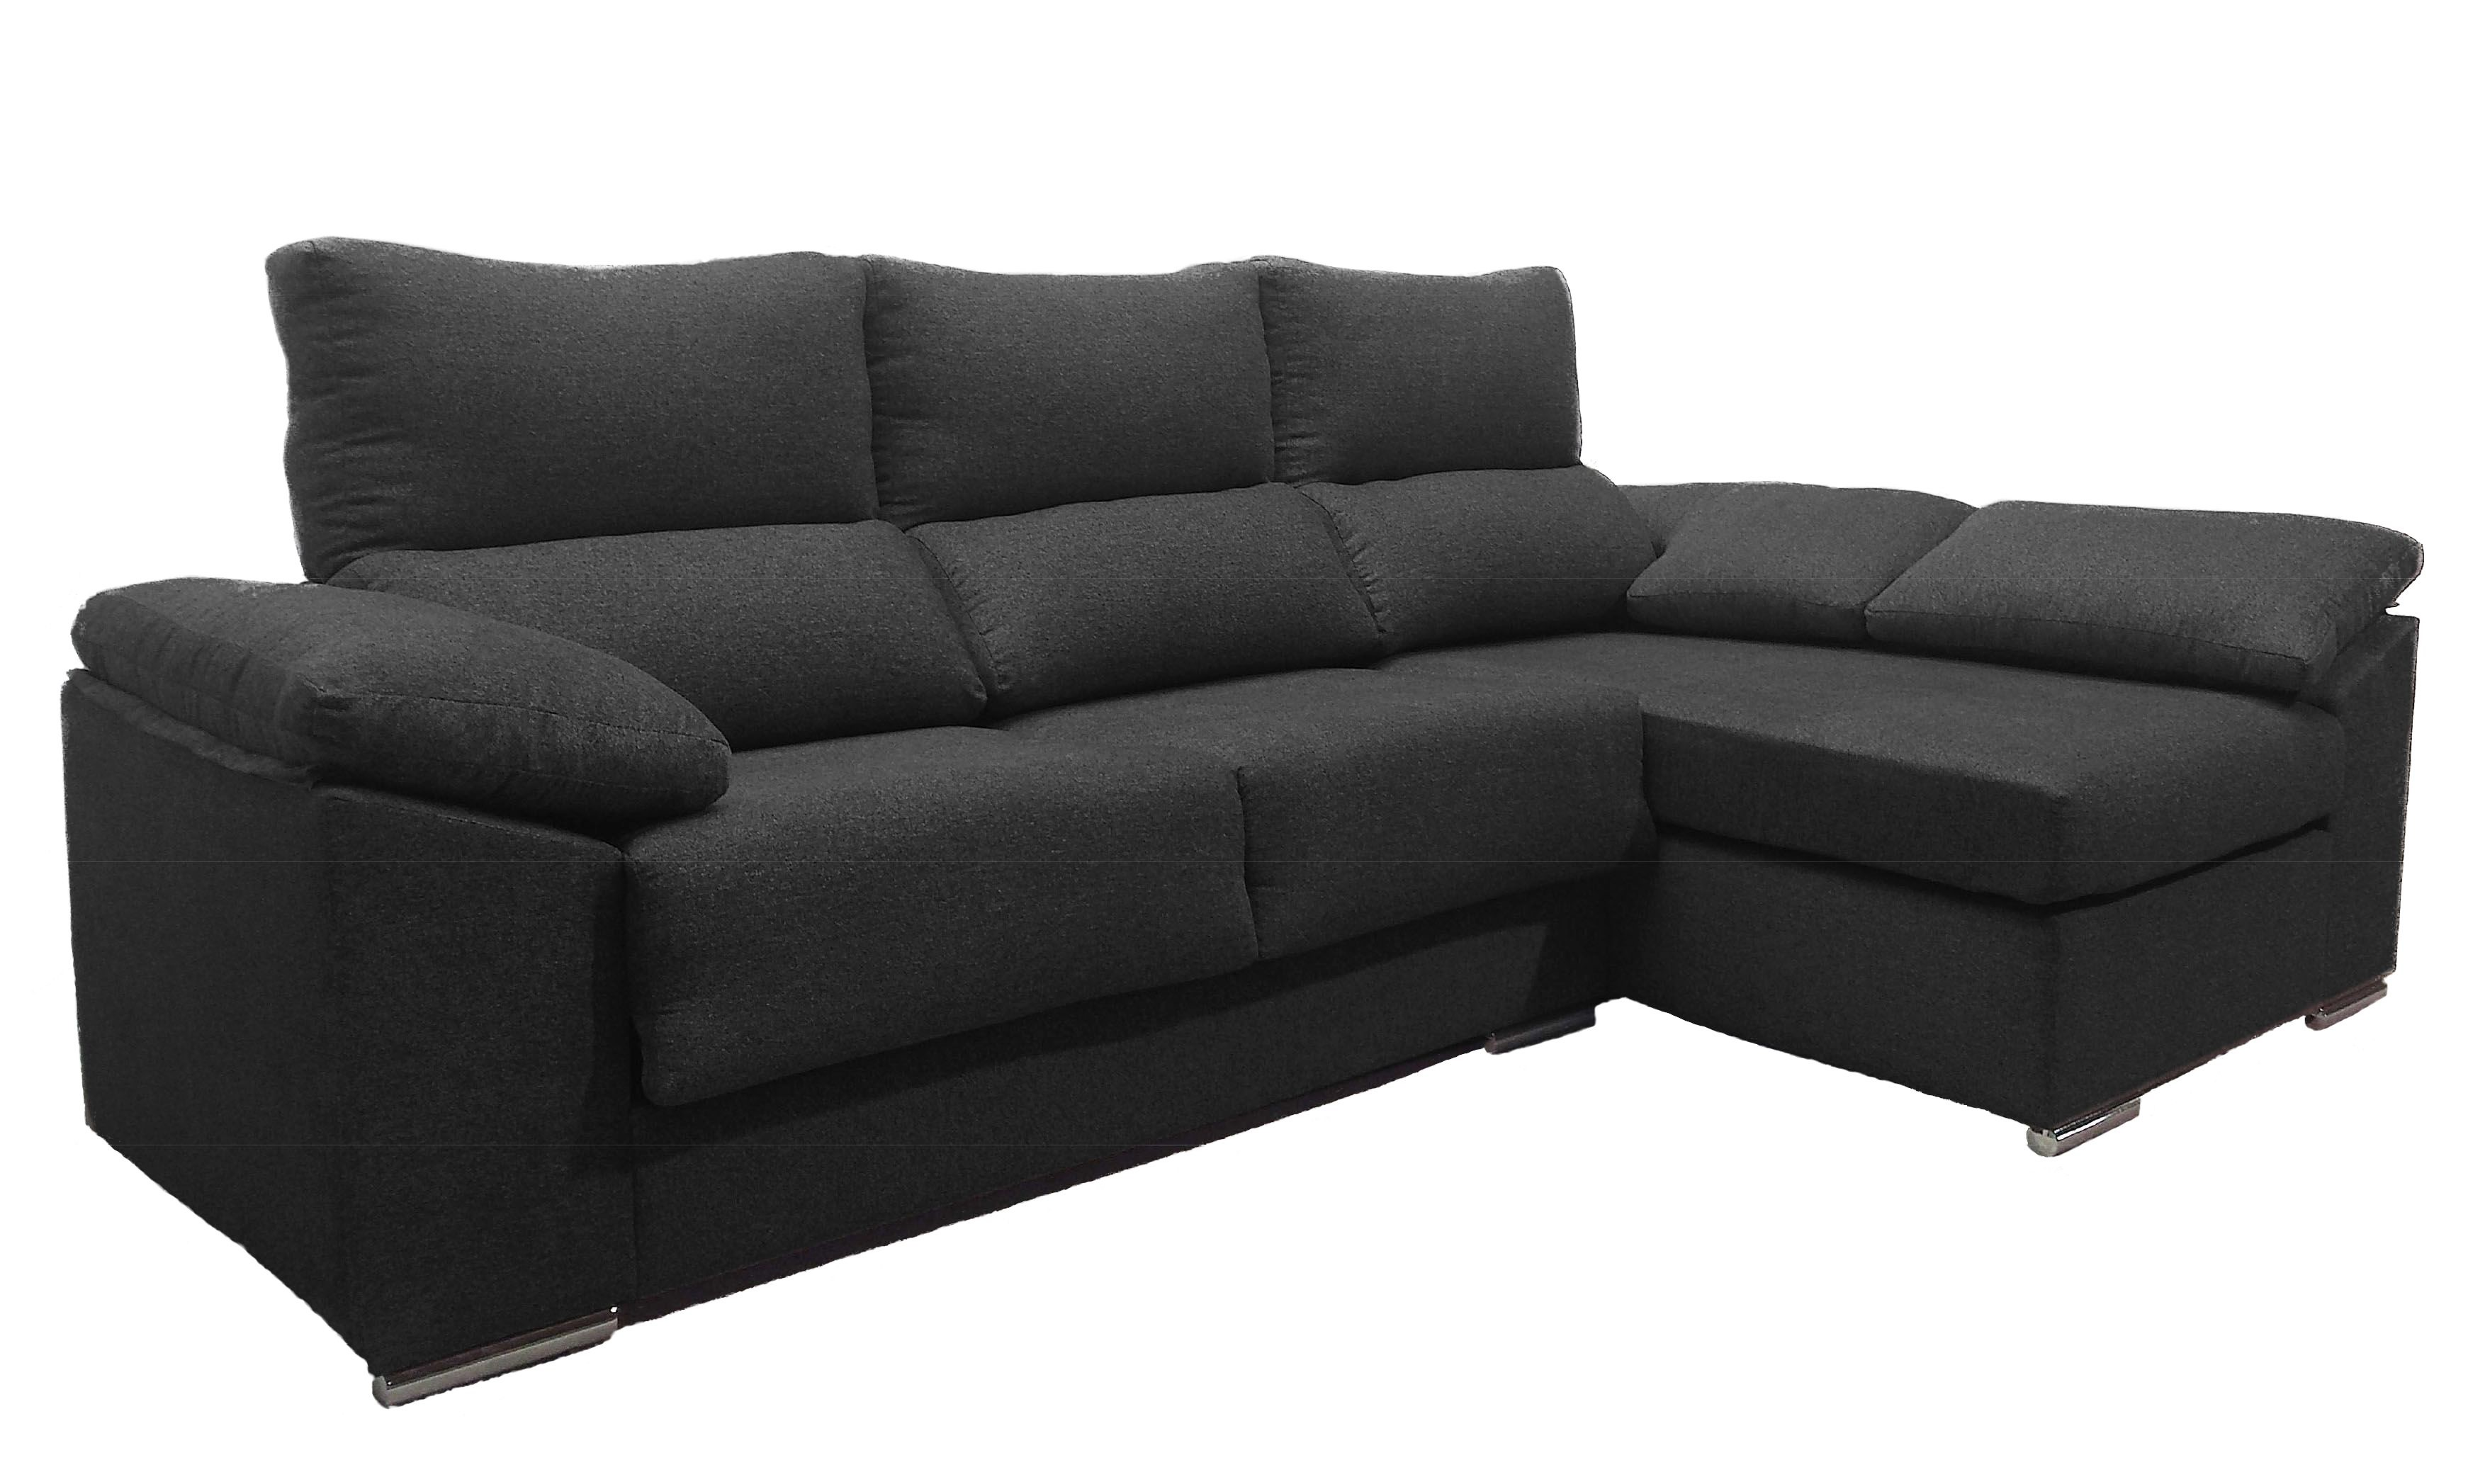 Sofas com chaise longue baratos sofa the honoroak - Chaise longue modernos ...